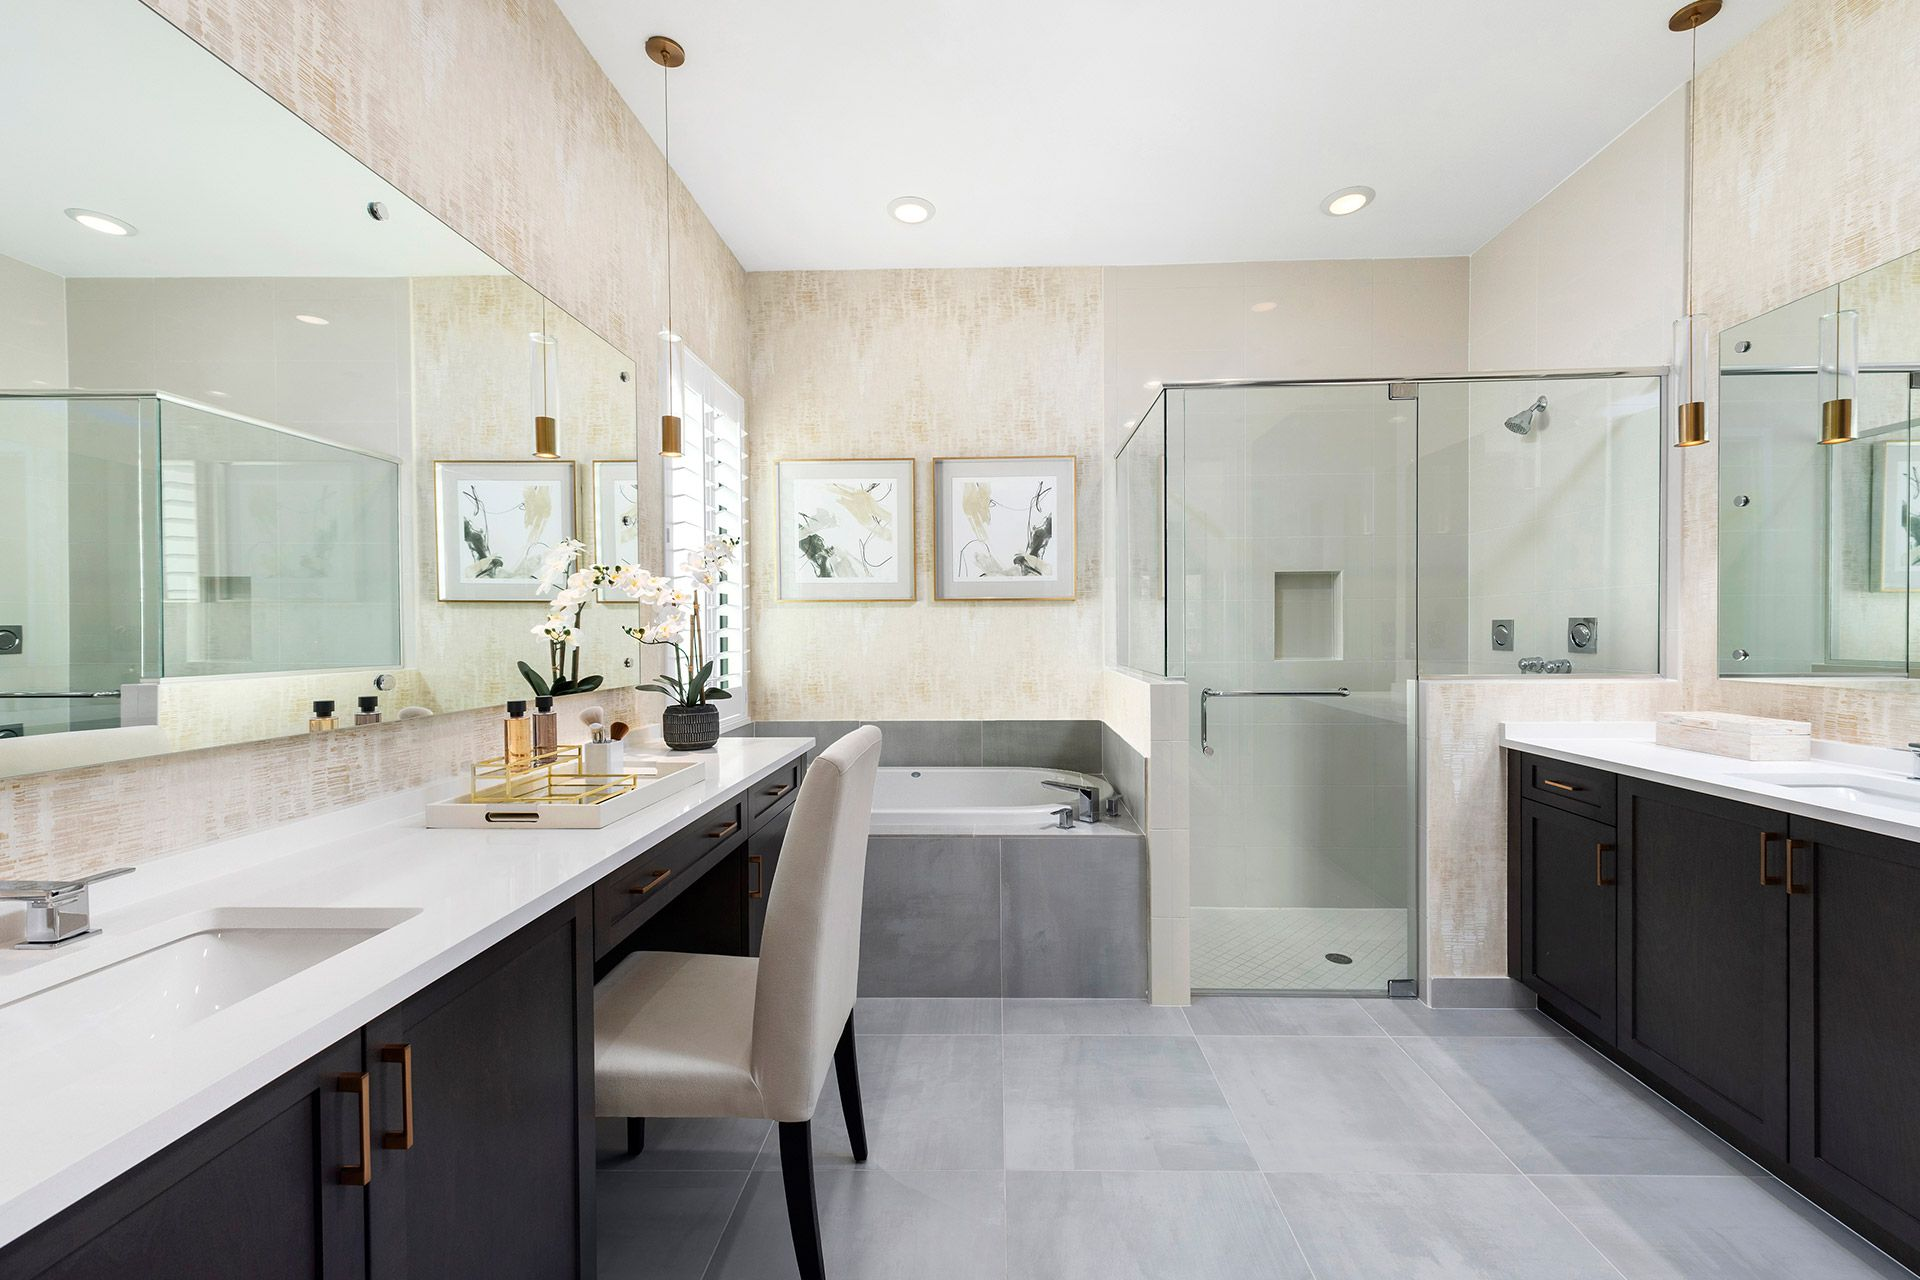 Bathroom featured in the Samoa By GL Homes in Palm Beach County, FL